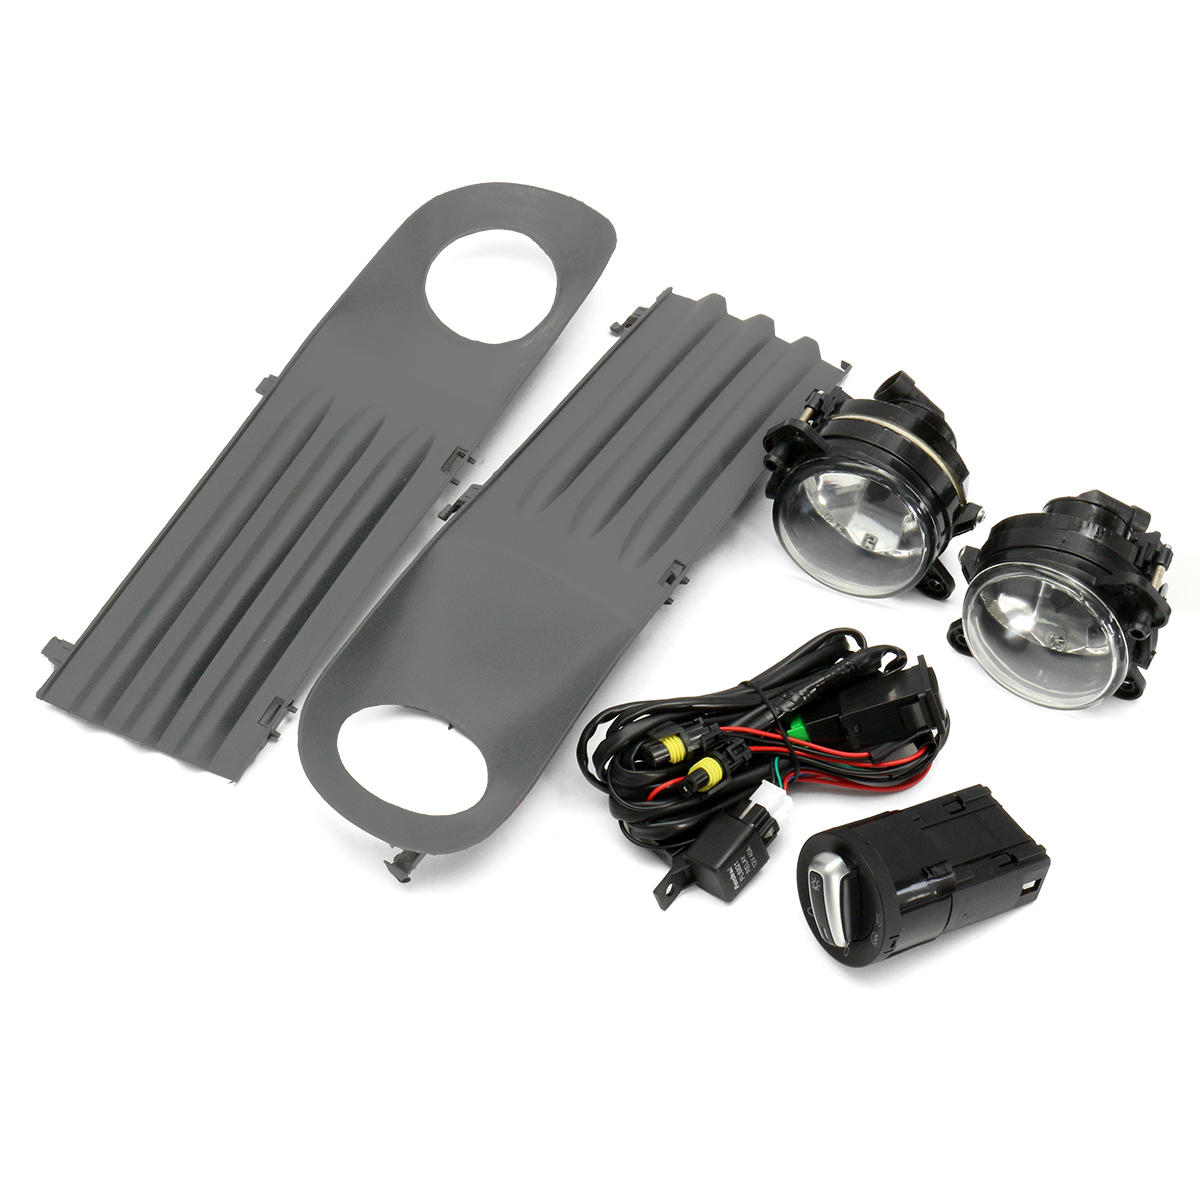 Car Front Fog Lights Grille Kit Set with Wiring Headlight Switch For VW T5 Transporter 2003-2010